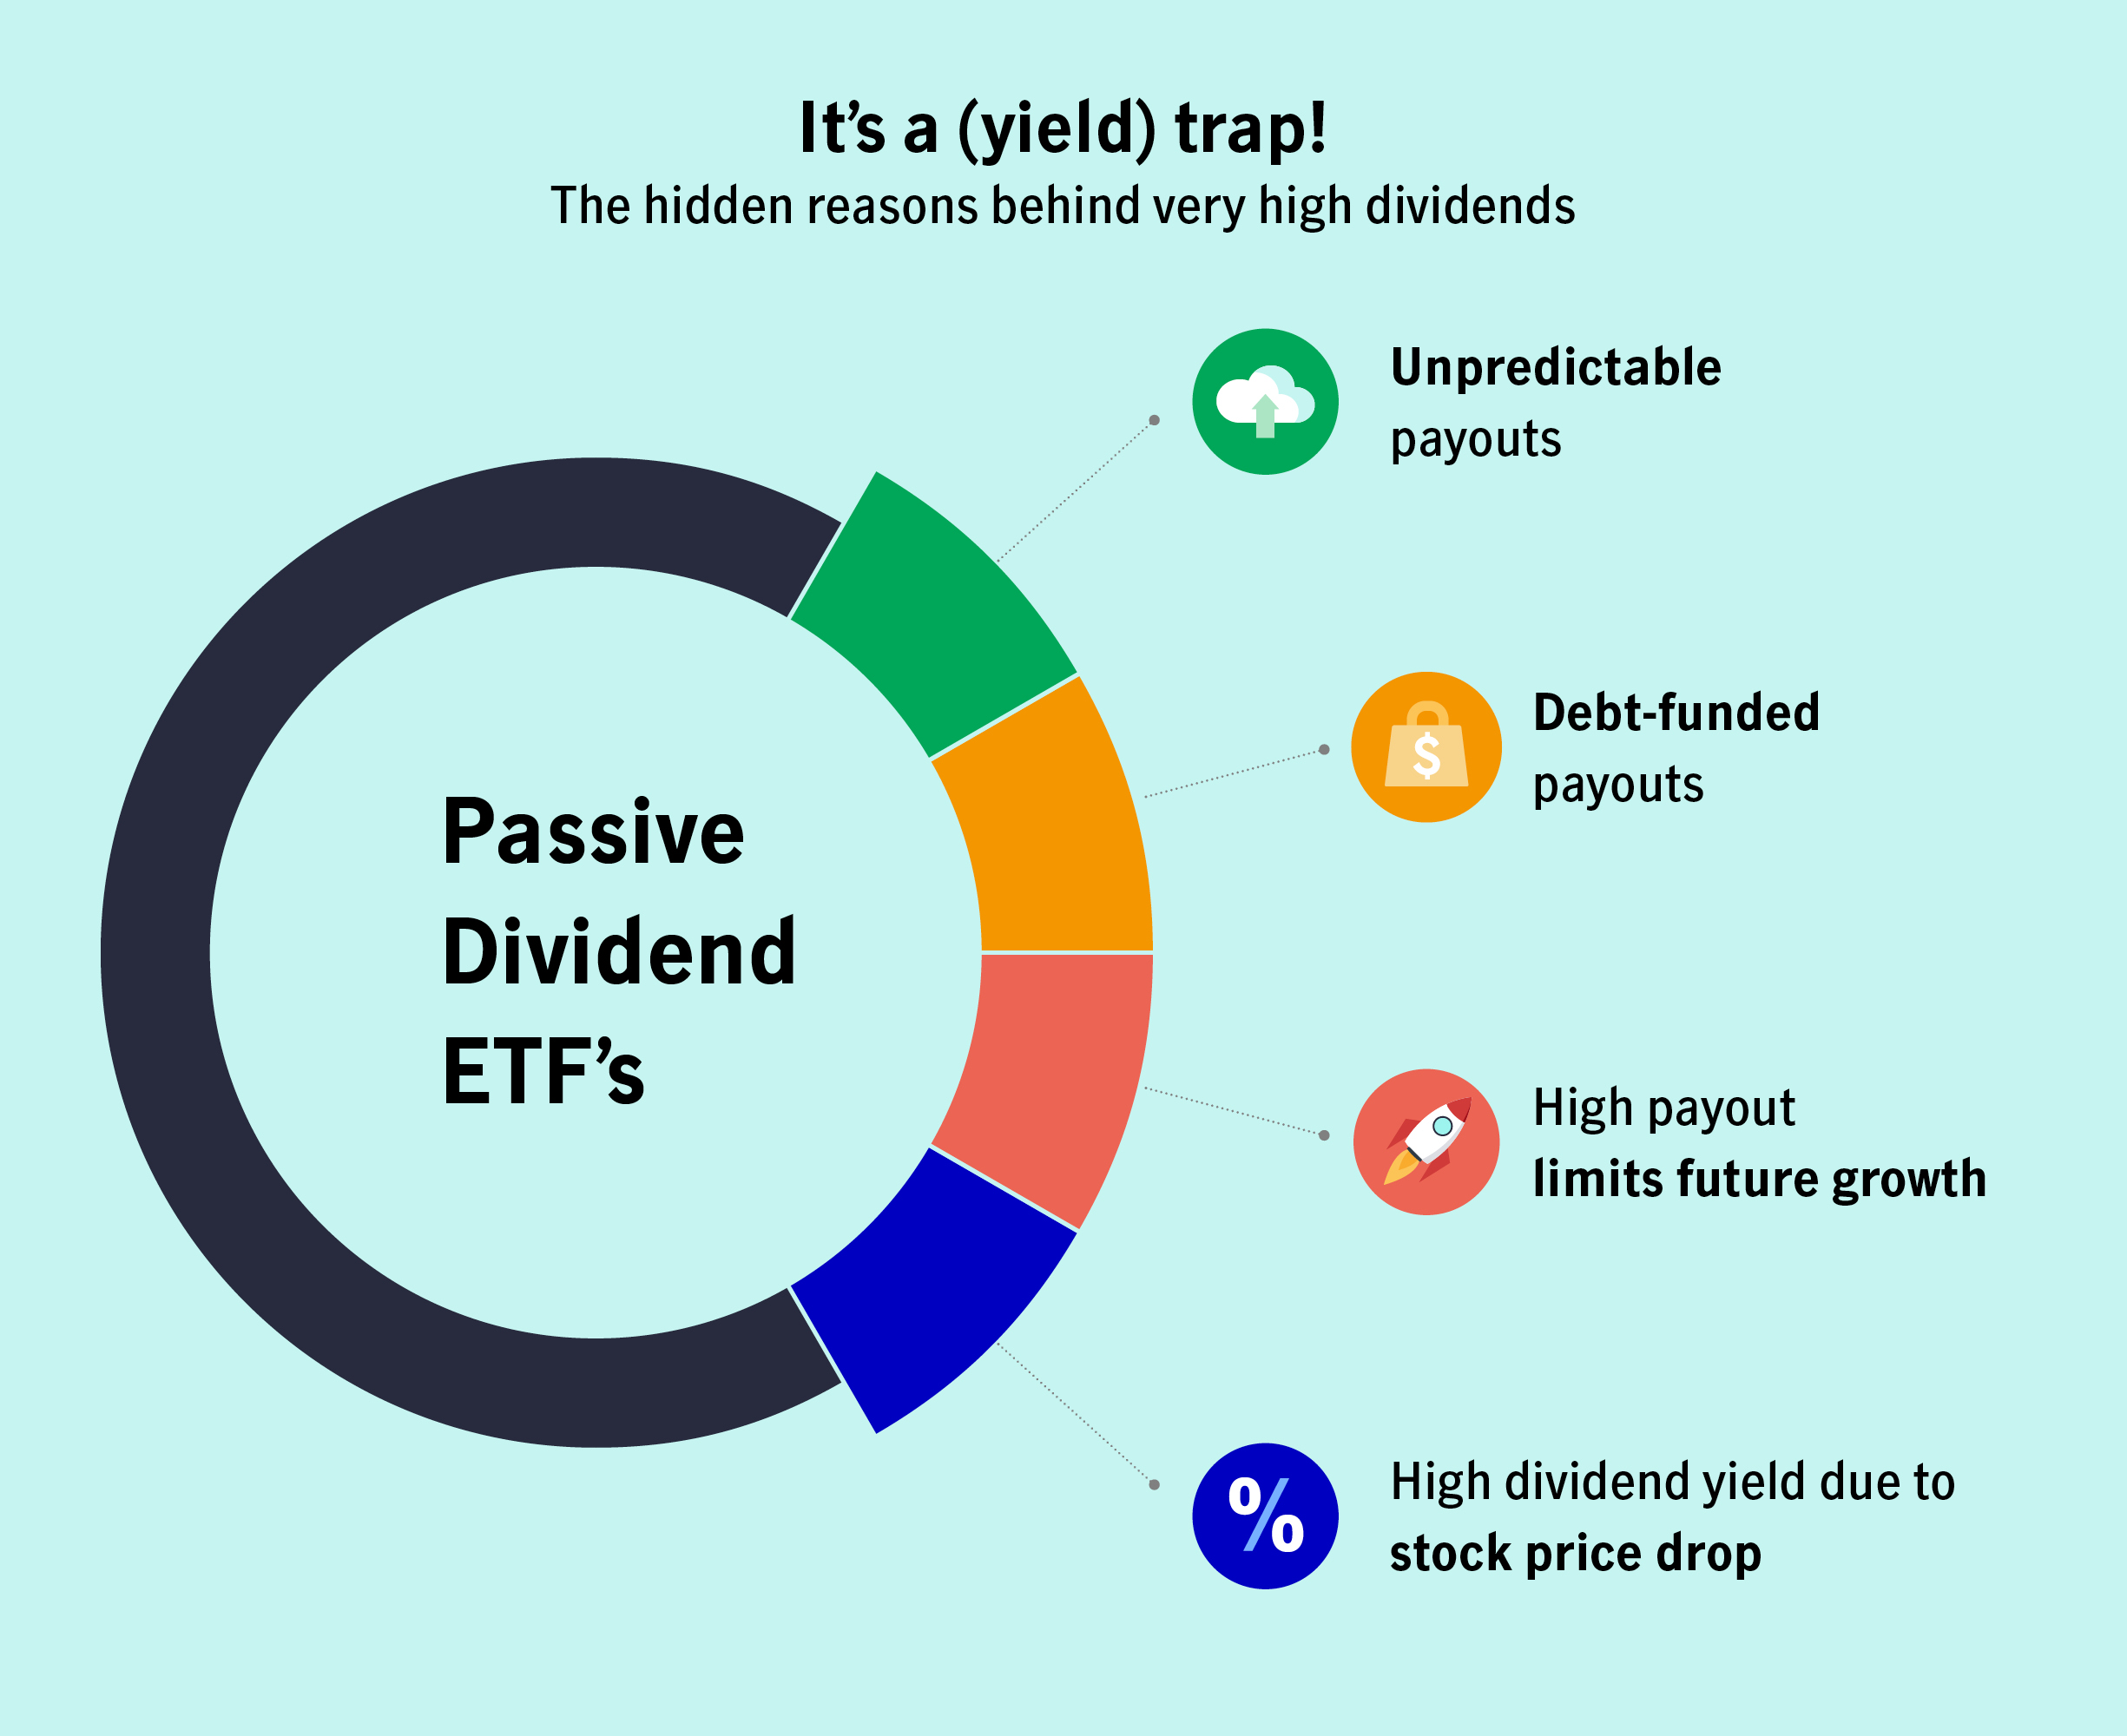 Diagram: It's a (yield) trap! The hidden reasons behind very high dividends. Unpredictable payouts, Debt-funded payouts, High payout limits future growth, High dividend yield due to stock price drop.